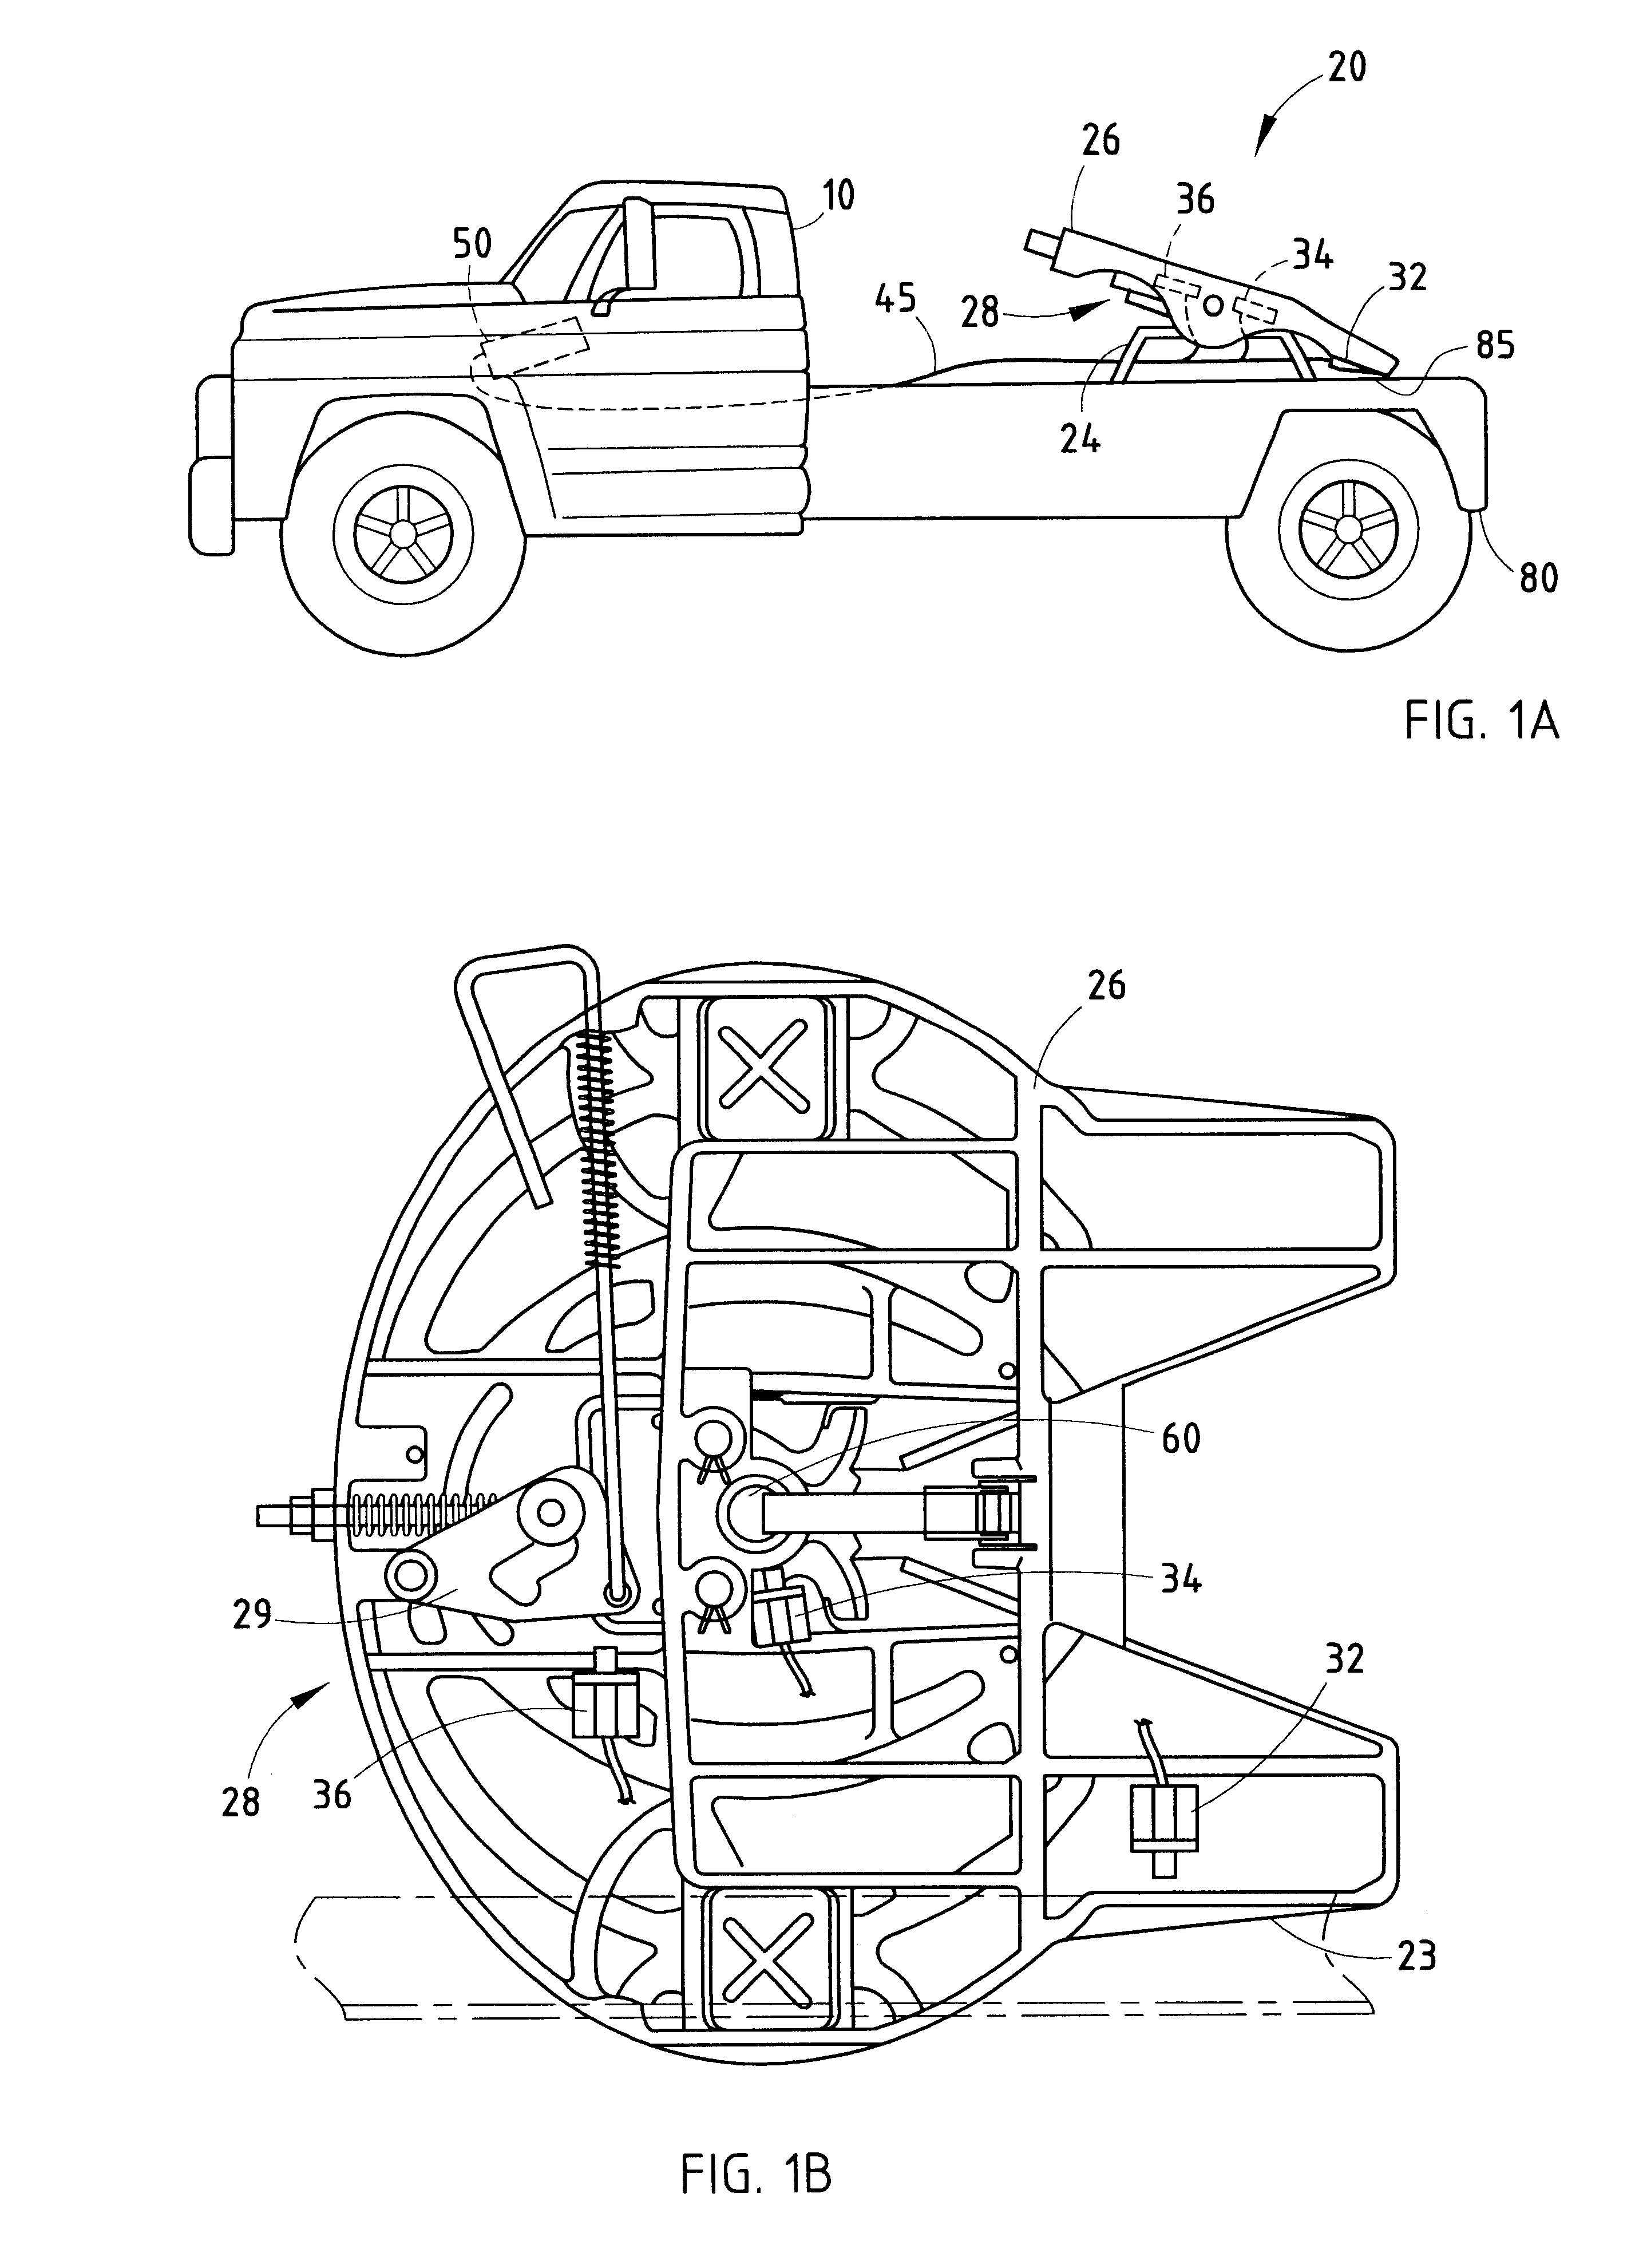 Tractor Trailer Fifth Wheel Diagrams : Patent us electronic system for monitoring a